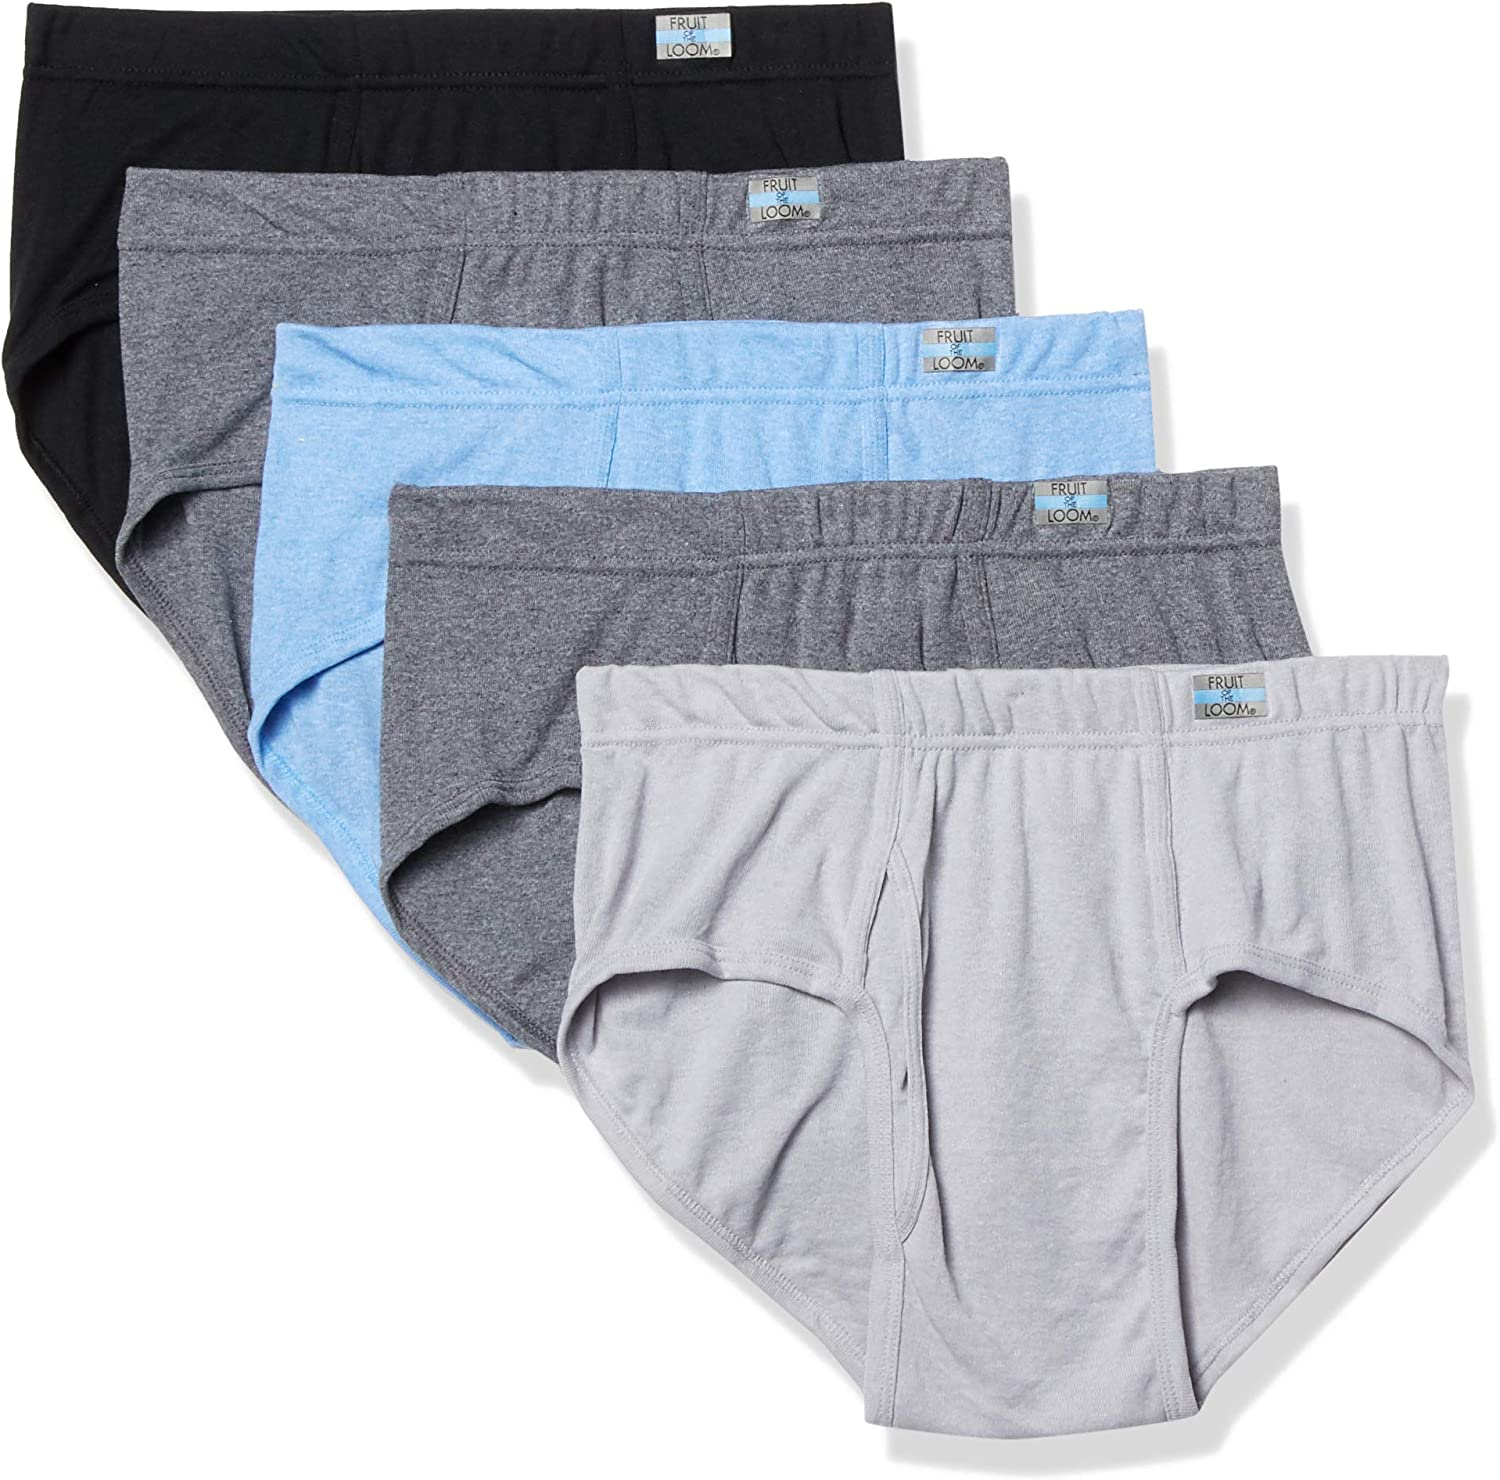 Fruit of the Loom Men's 5pk Fashion Brief